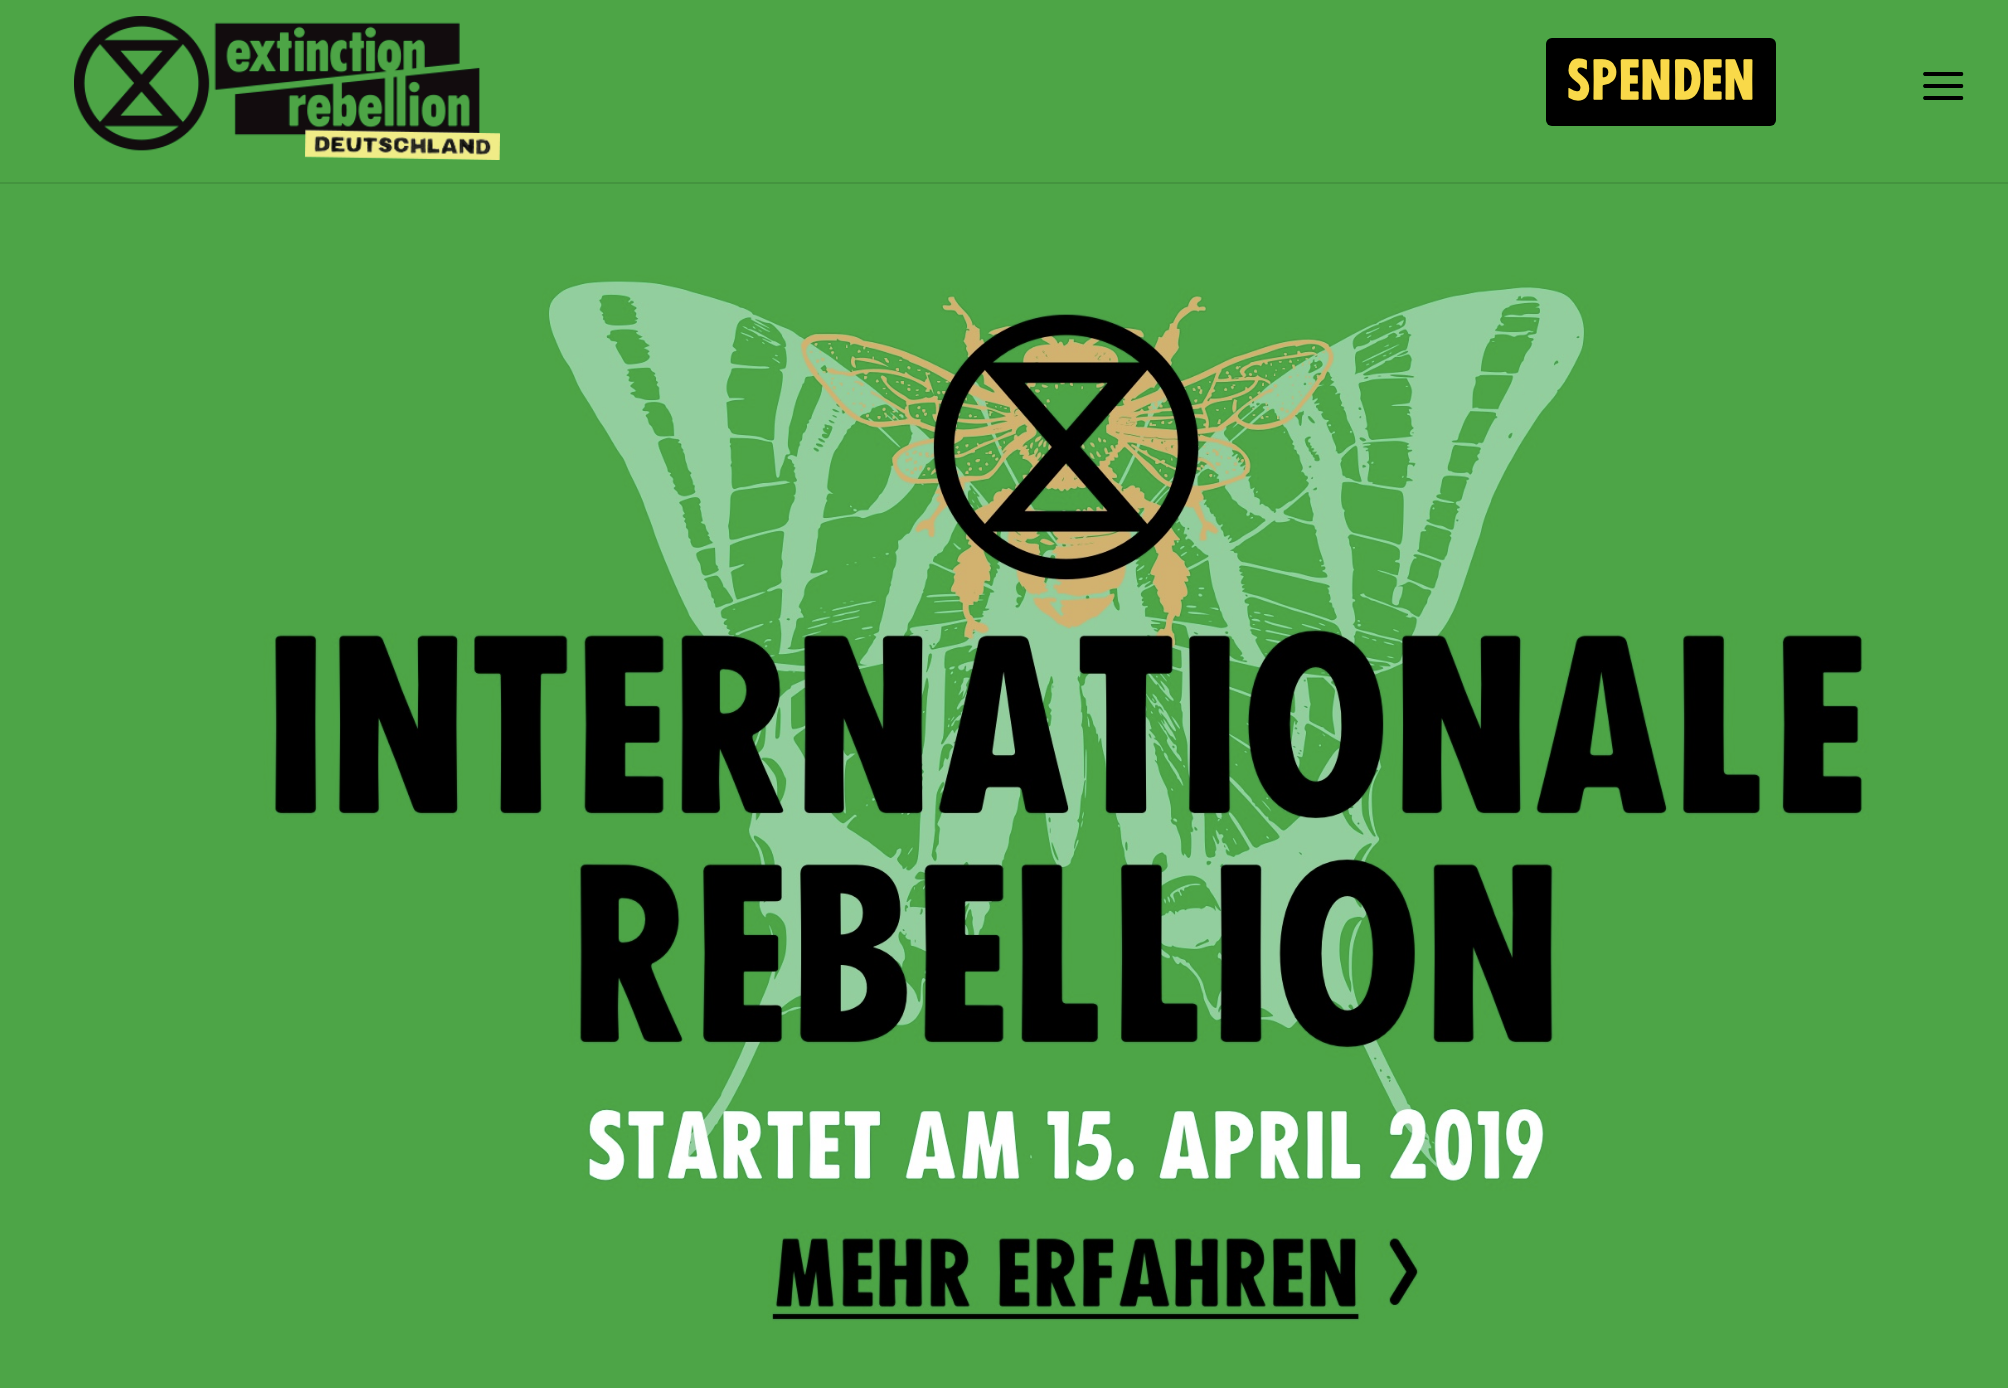 Screenshot from  https://extinctionrebellion.de/